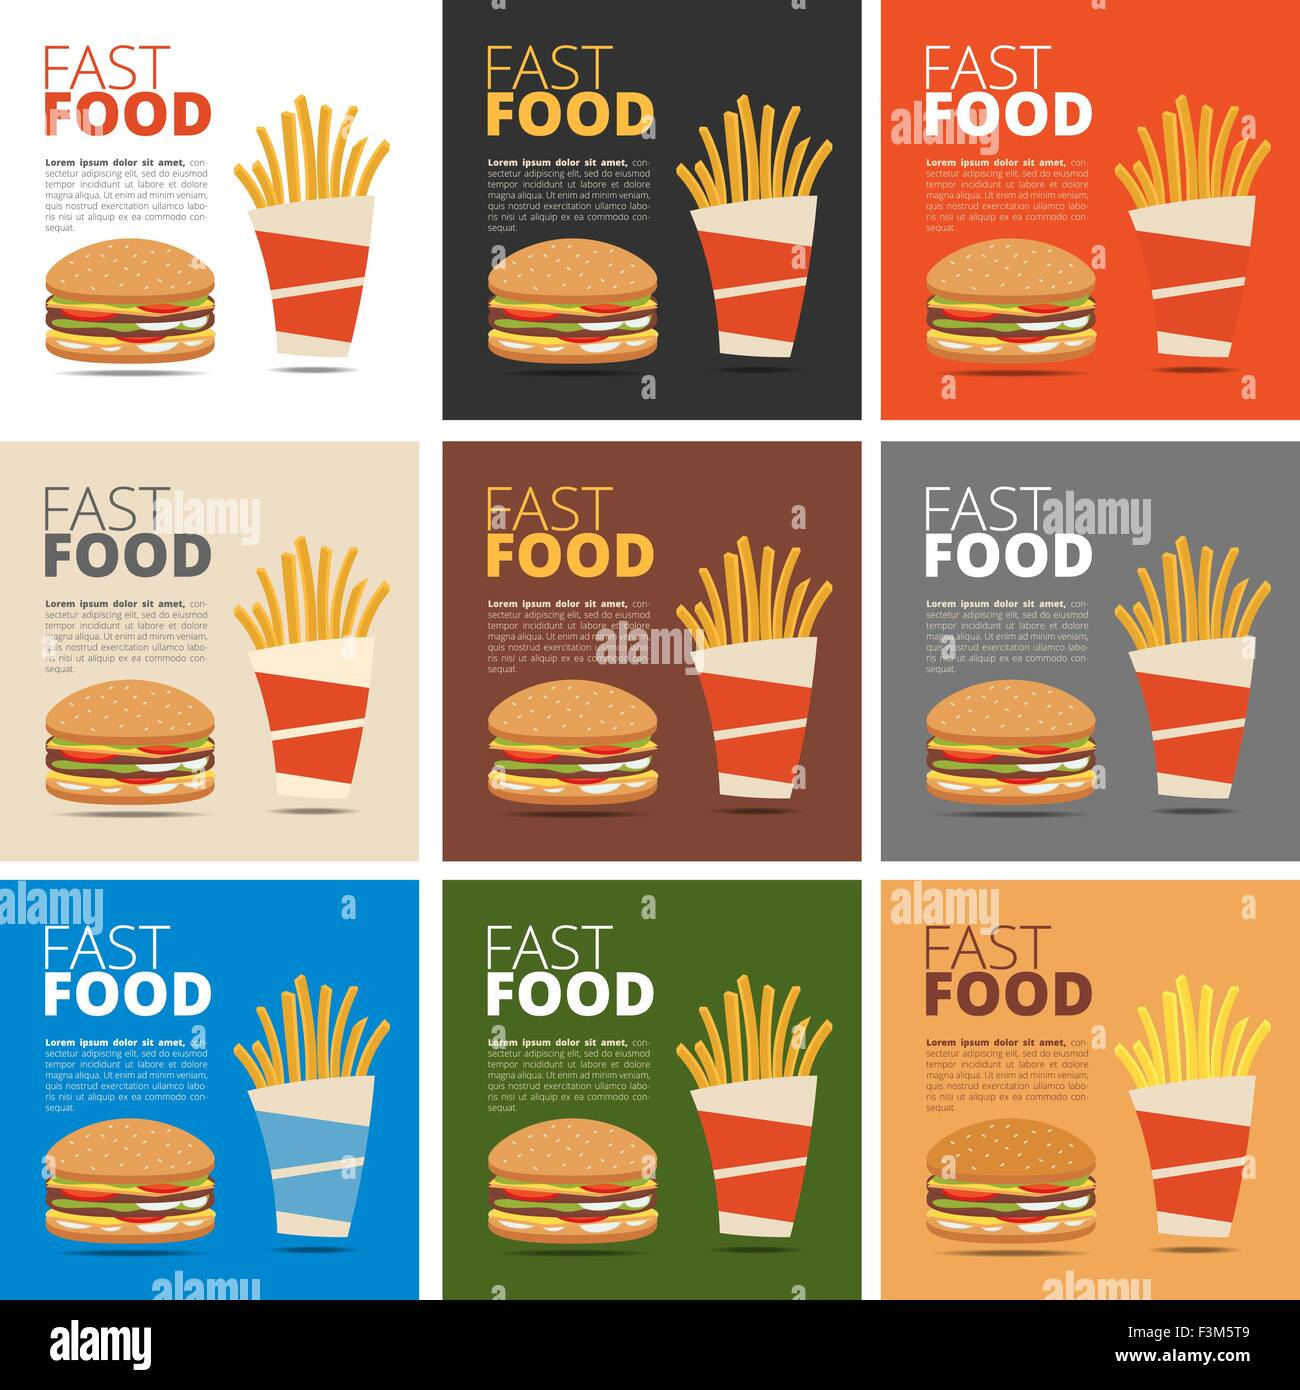 Fast Food Restaurant Menu With Burger French Fries And Drink Stock Vector Image Art Alamy